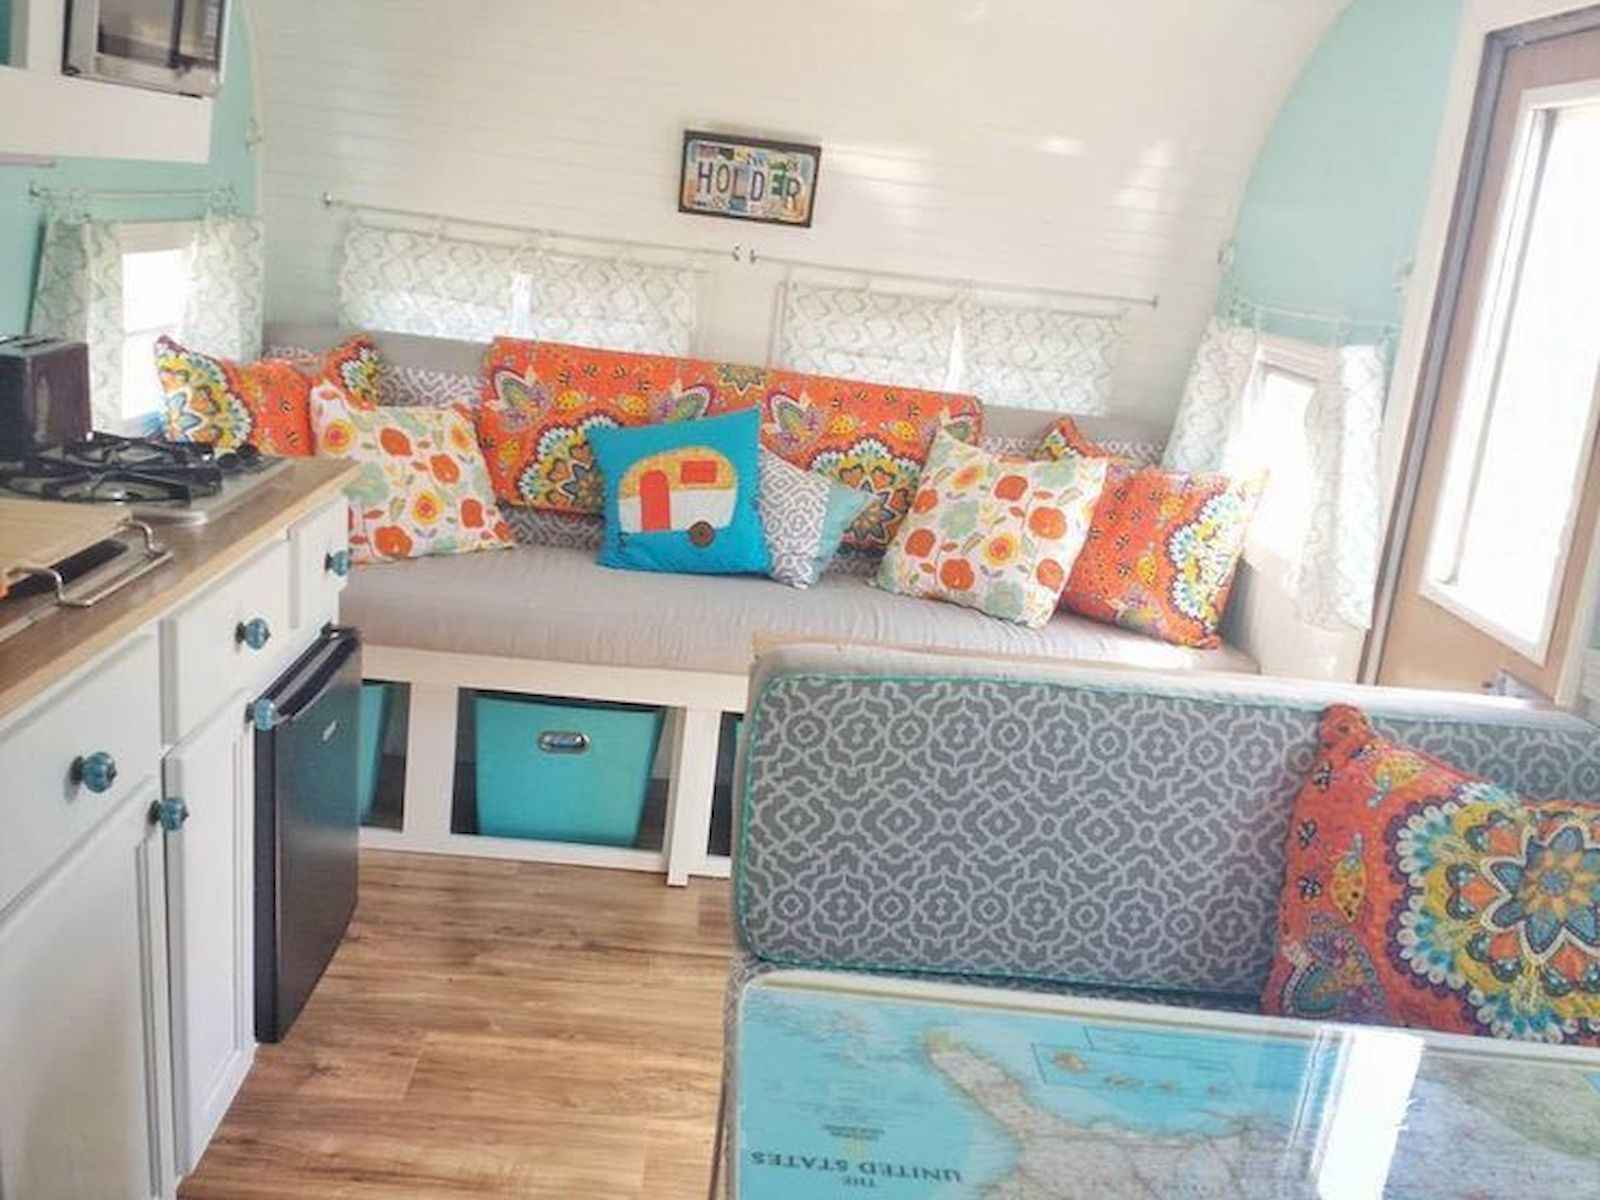 70 Stunning RV Living Camper Room Ideas Decorations Make Your Summer Awesome (13)